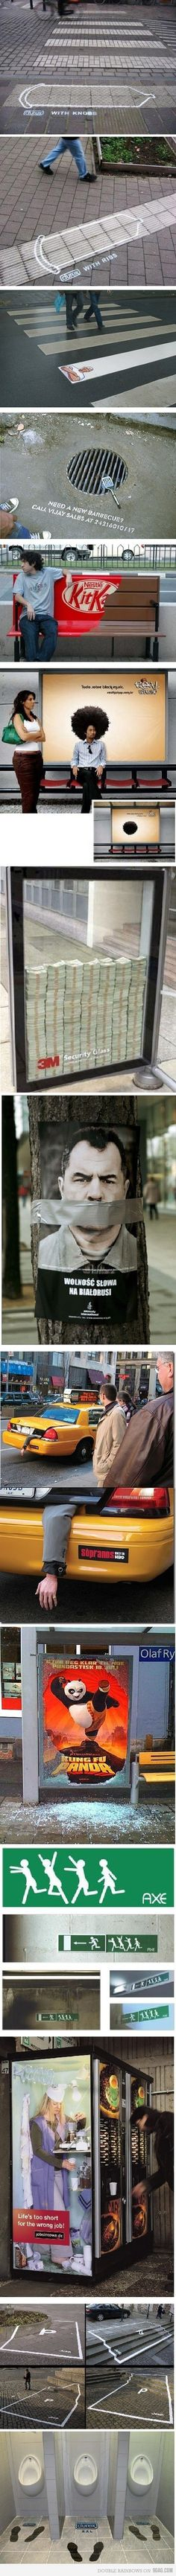 some guerrilla marketing. Just some guerrilla marketing.Just some guerrilla marketing. Guerilla Marketing, Street Marketing, Guerrilla Advertising, Clever Advertising, Advertising Design, Marketing And Advertising, Marketing Ideas, Experiential Marketing, Advertising Campaign